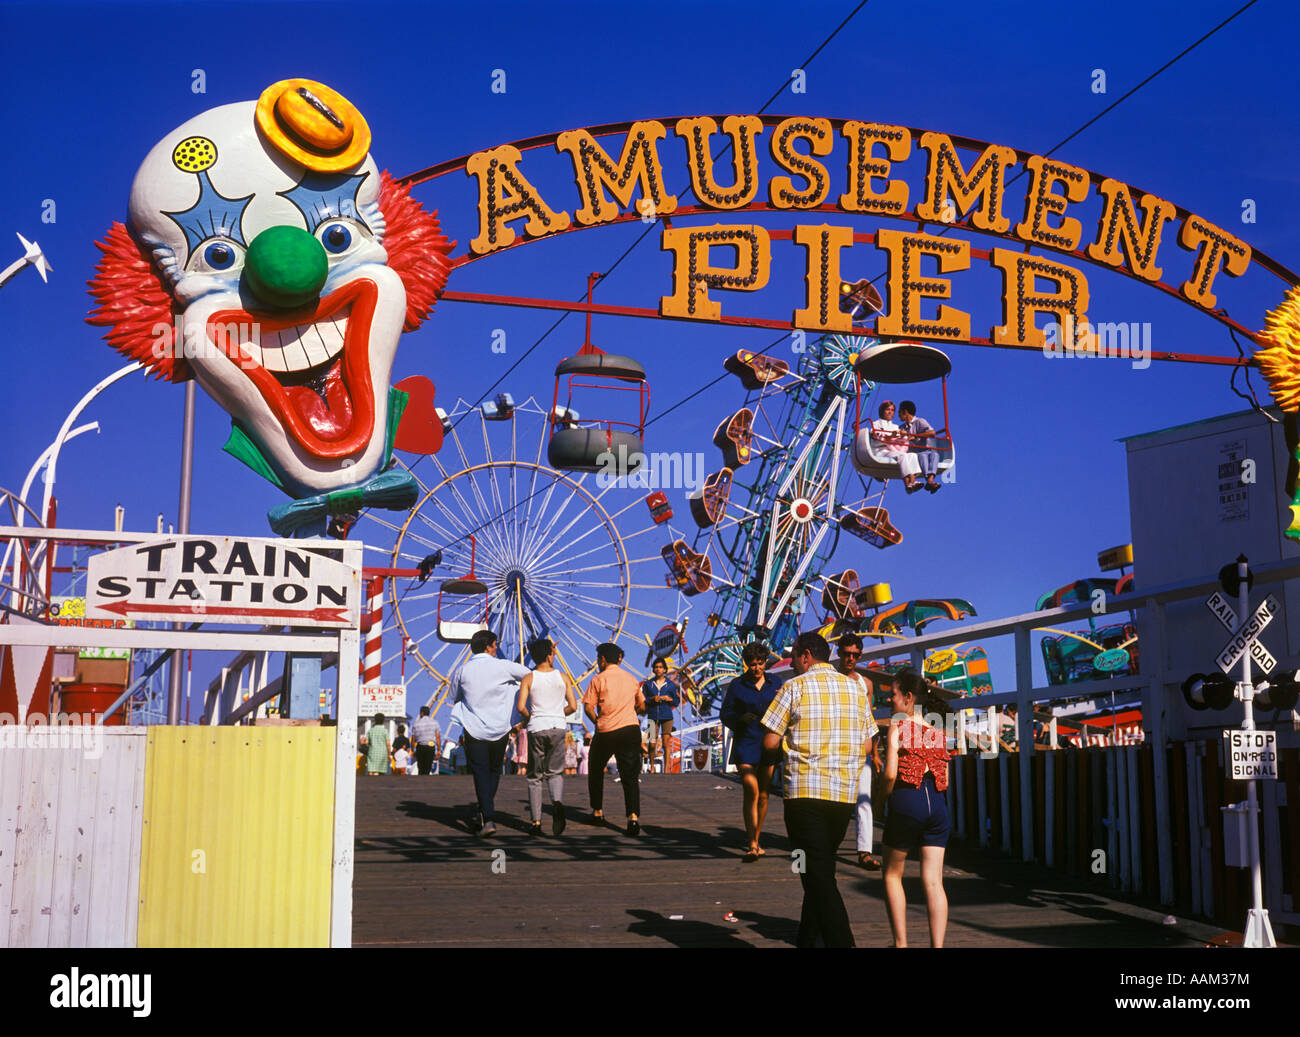 1960 Seaside Heights NEW JERSEY AMUSEMENT PIER FIRMAR Ríe payaso de los parques de diversiones BOARDWALK VERANO Imagen De Stock